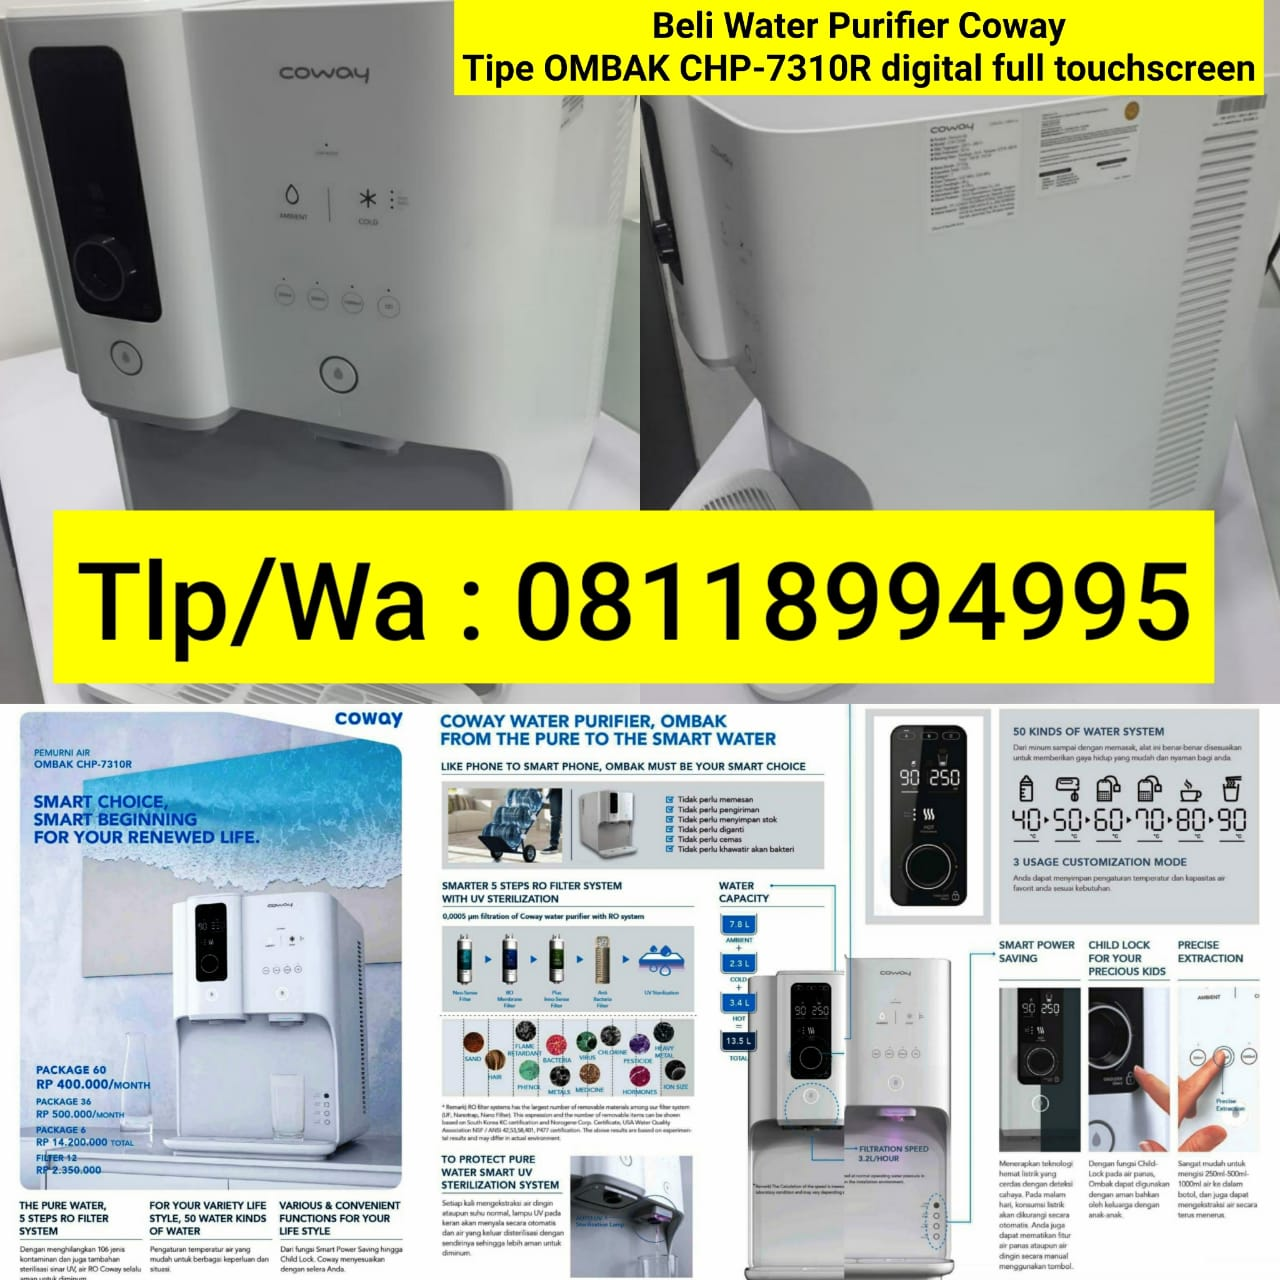 Water purifier coway tipe OMBAK CHP-7310R digital full touchscreen